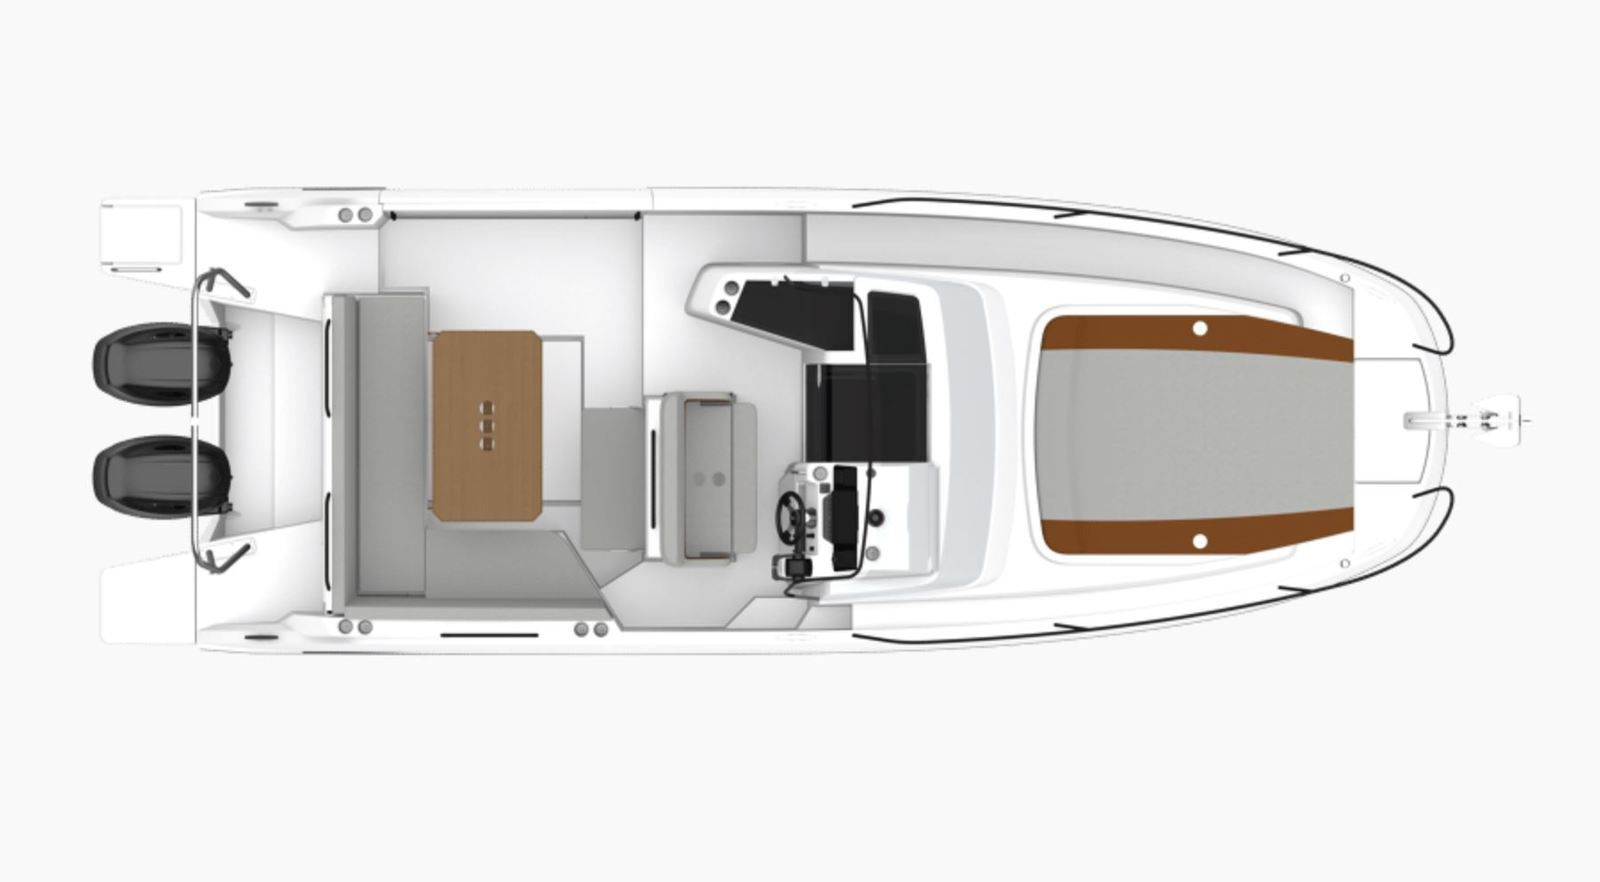 Scoop - first pictures of the new Bénéteau Flyer 9 SunDeck